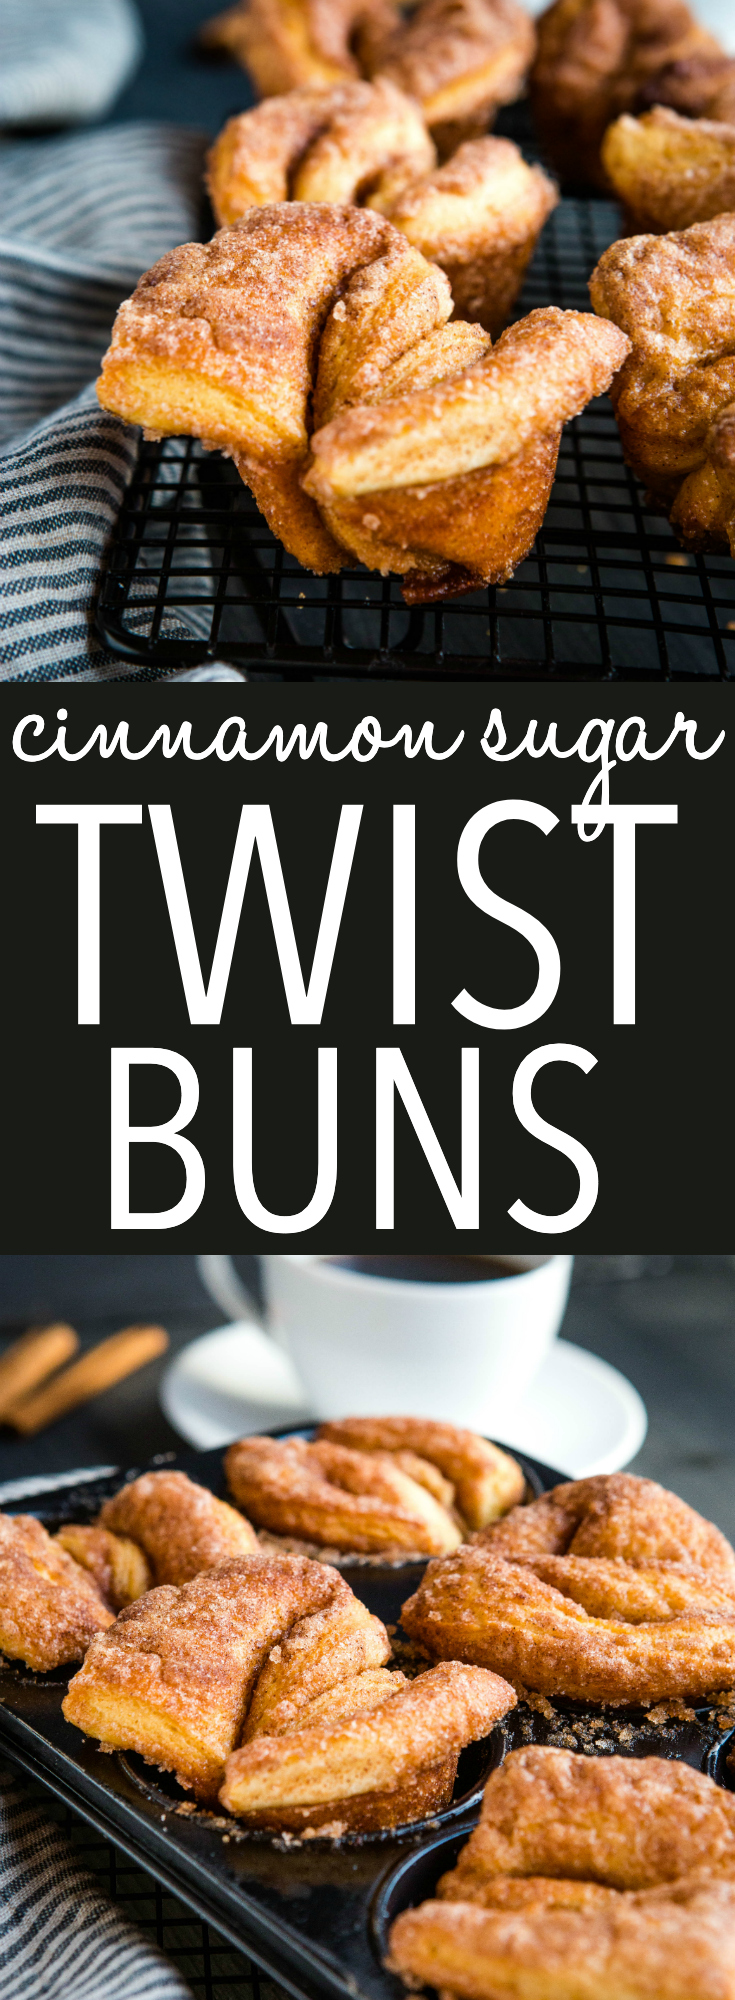 Sugary Cinnamon Twists are the perfect sweet treat for donut lovers! Sweet breakfast pastries rolled in butter and cinnamon sugar, they're great with brunch or a coffee break. Recipe from thebusybaker.ca! #cinnamonsugar #sweetrolls #homemade #fromscratch #sweetbuns #brunch #breakfast #coffeebreak #donuts #muffins via @busybakerblog